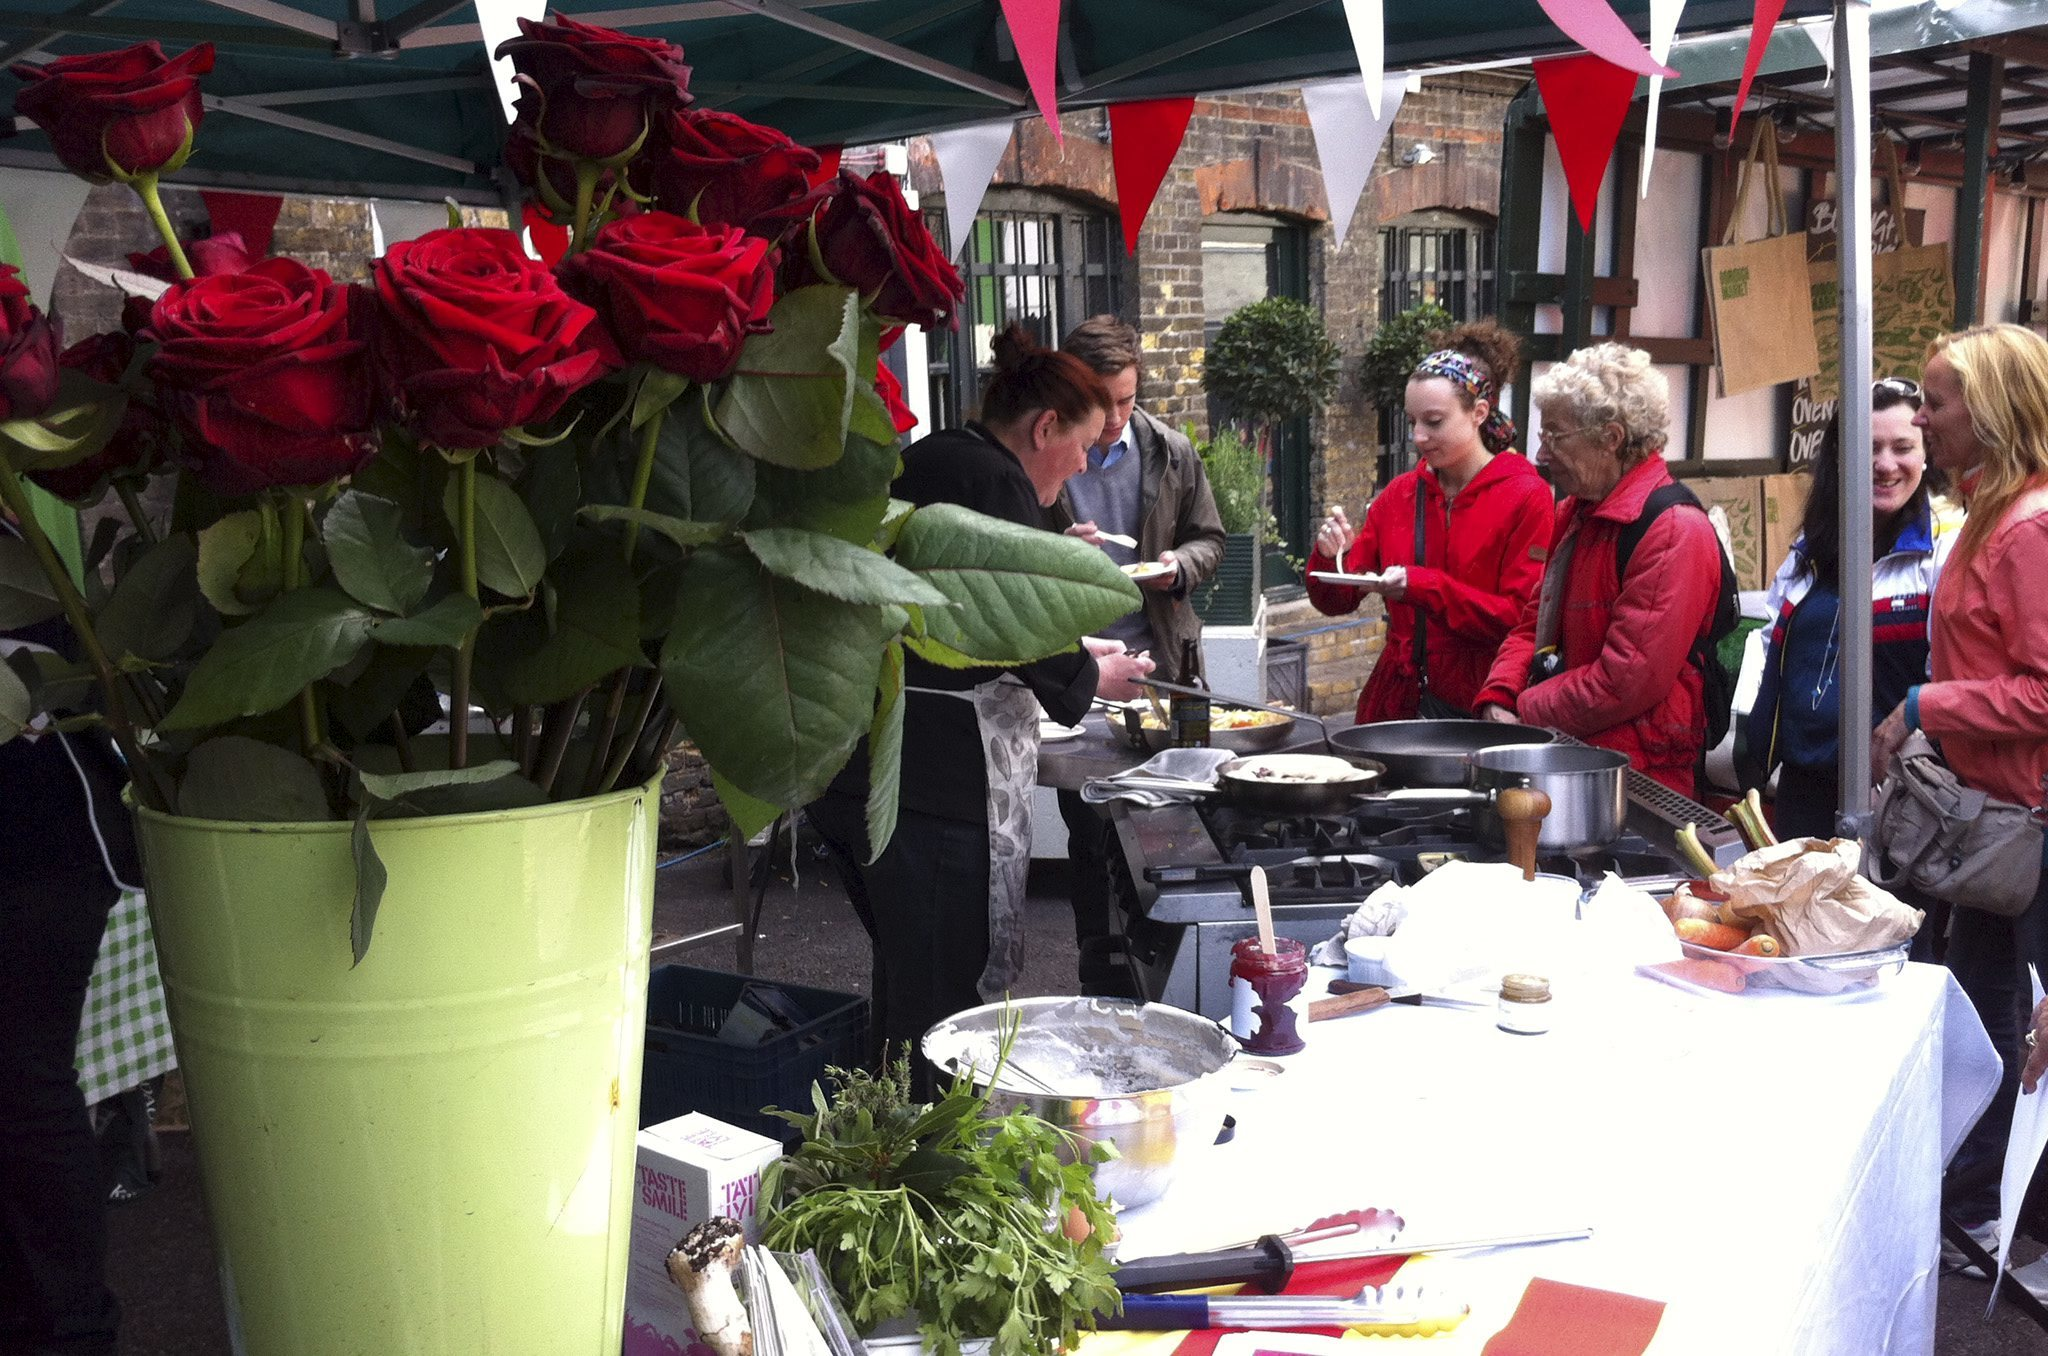 St George's Day at Borough Market